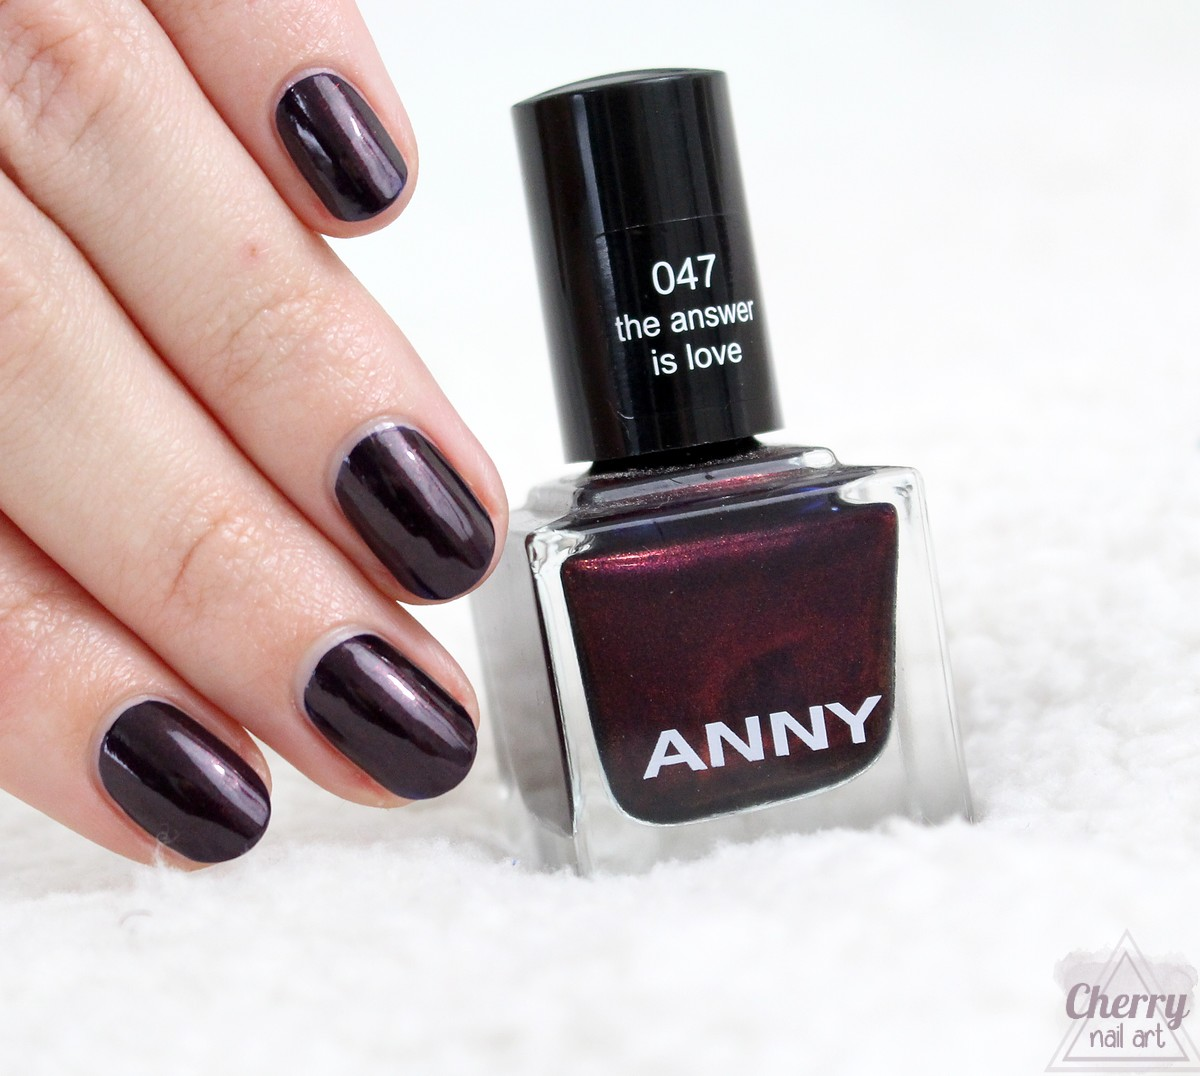 vernis-anny-47-the-answer-is-love